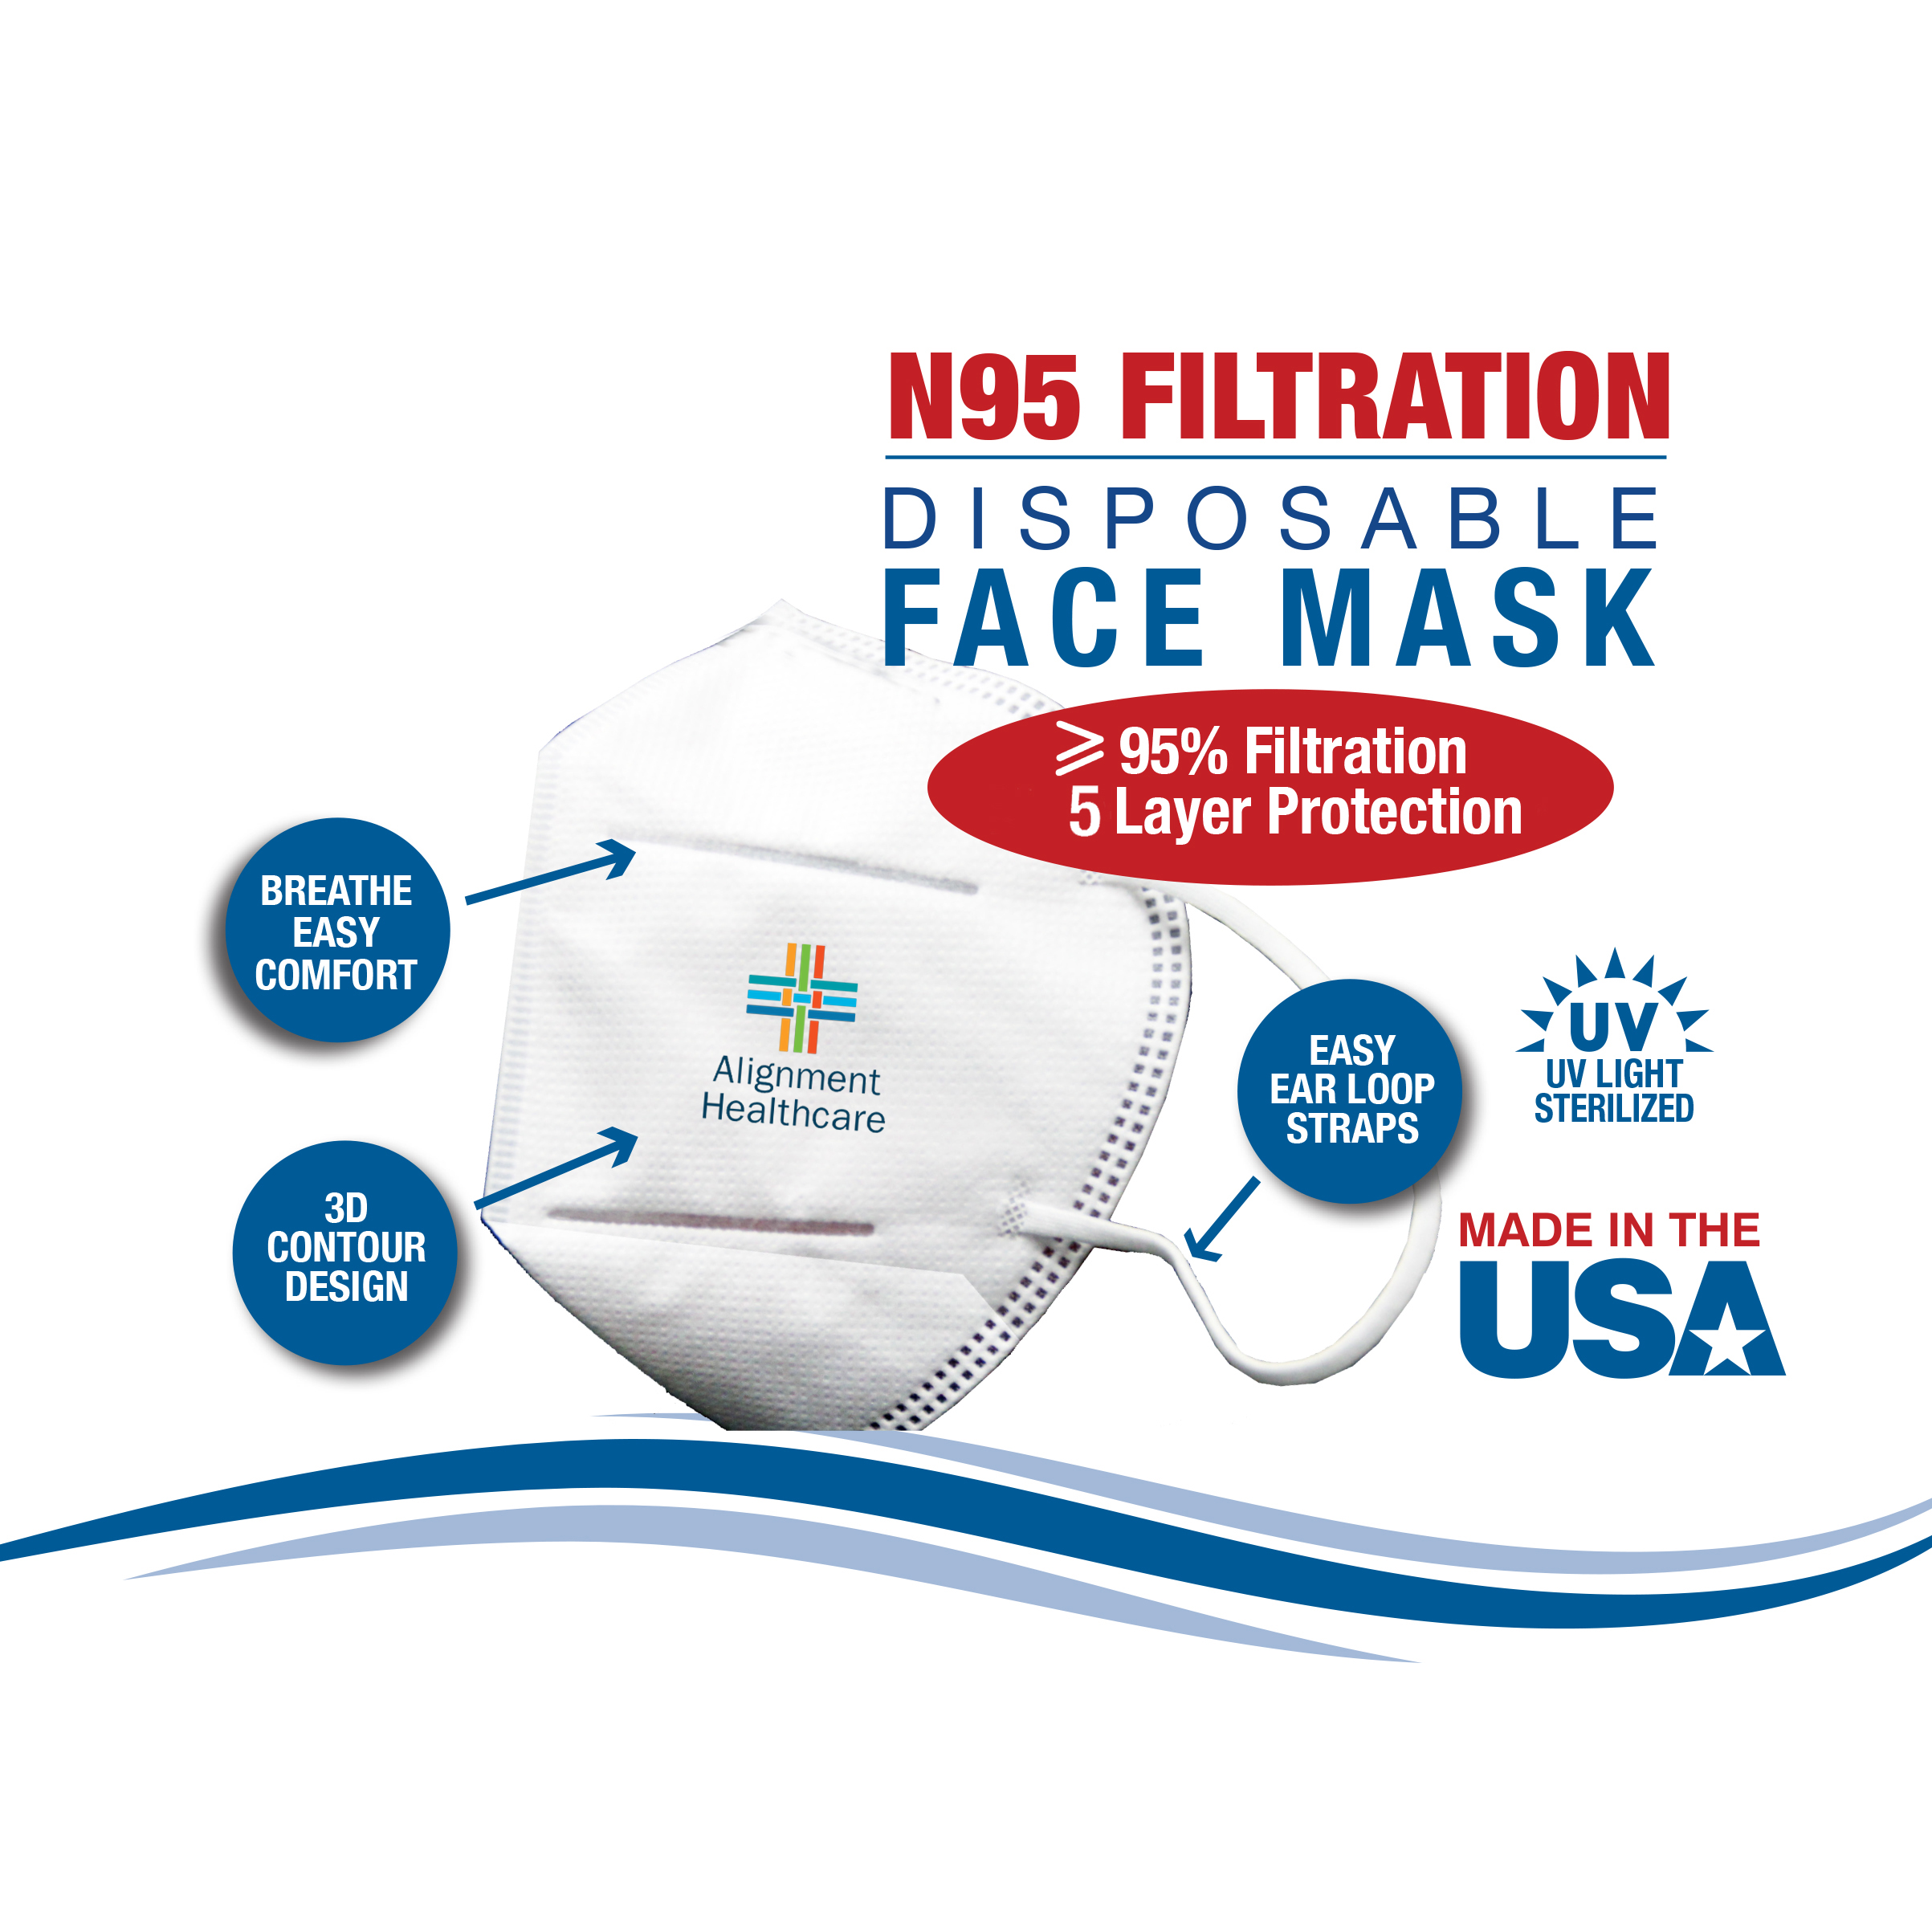 Printed N95 Filtration Mask